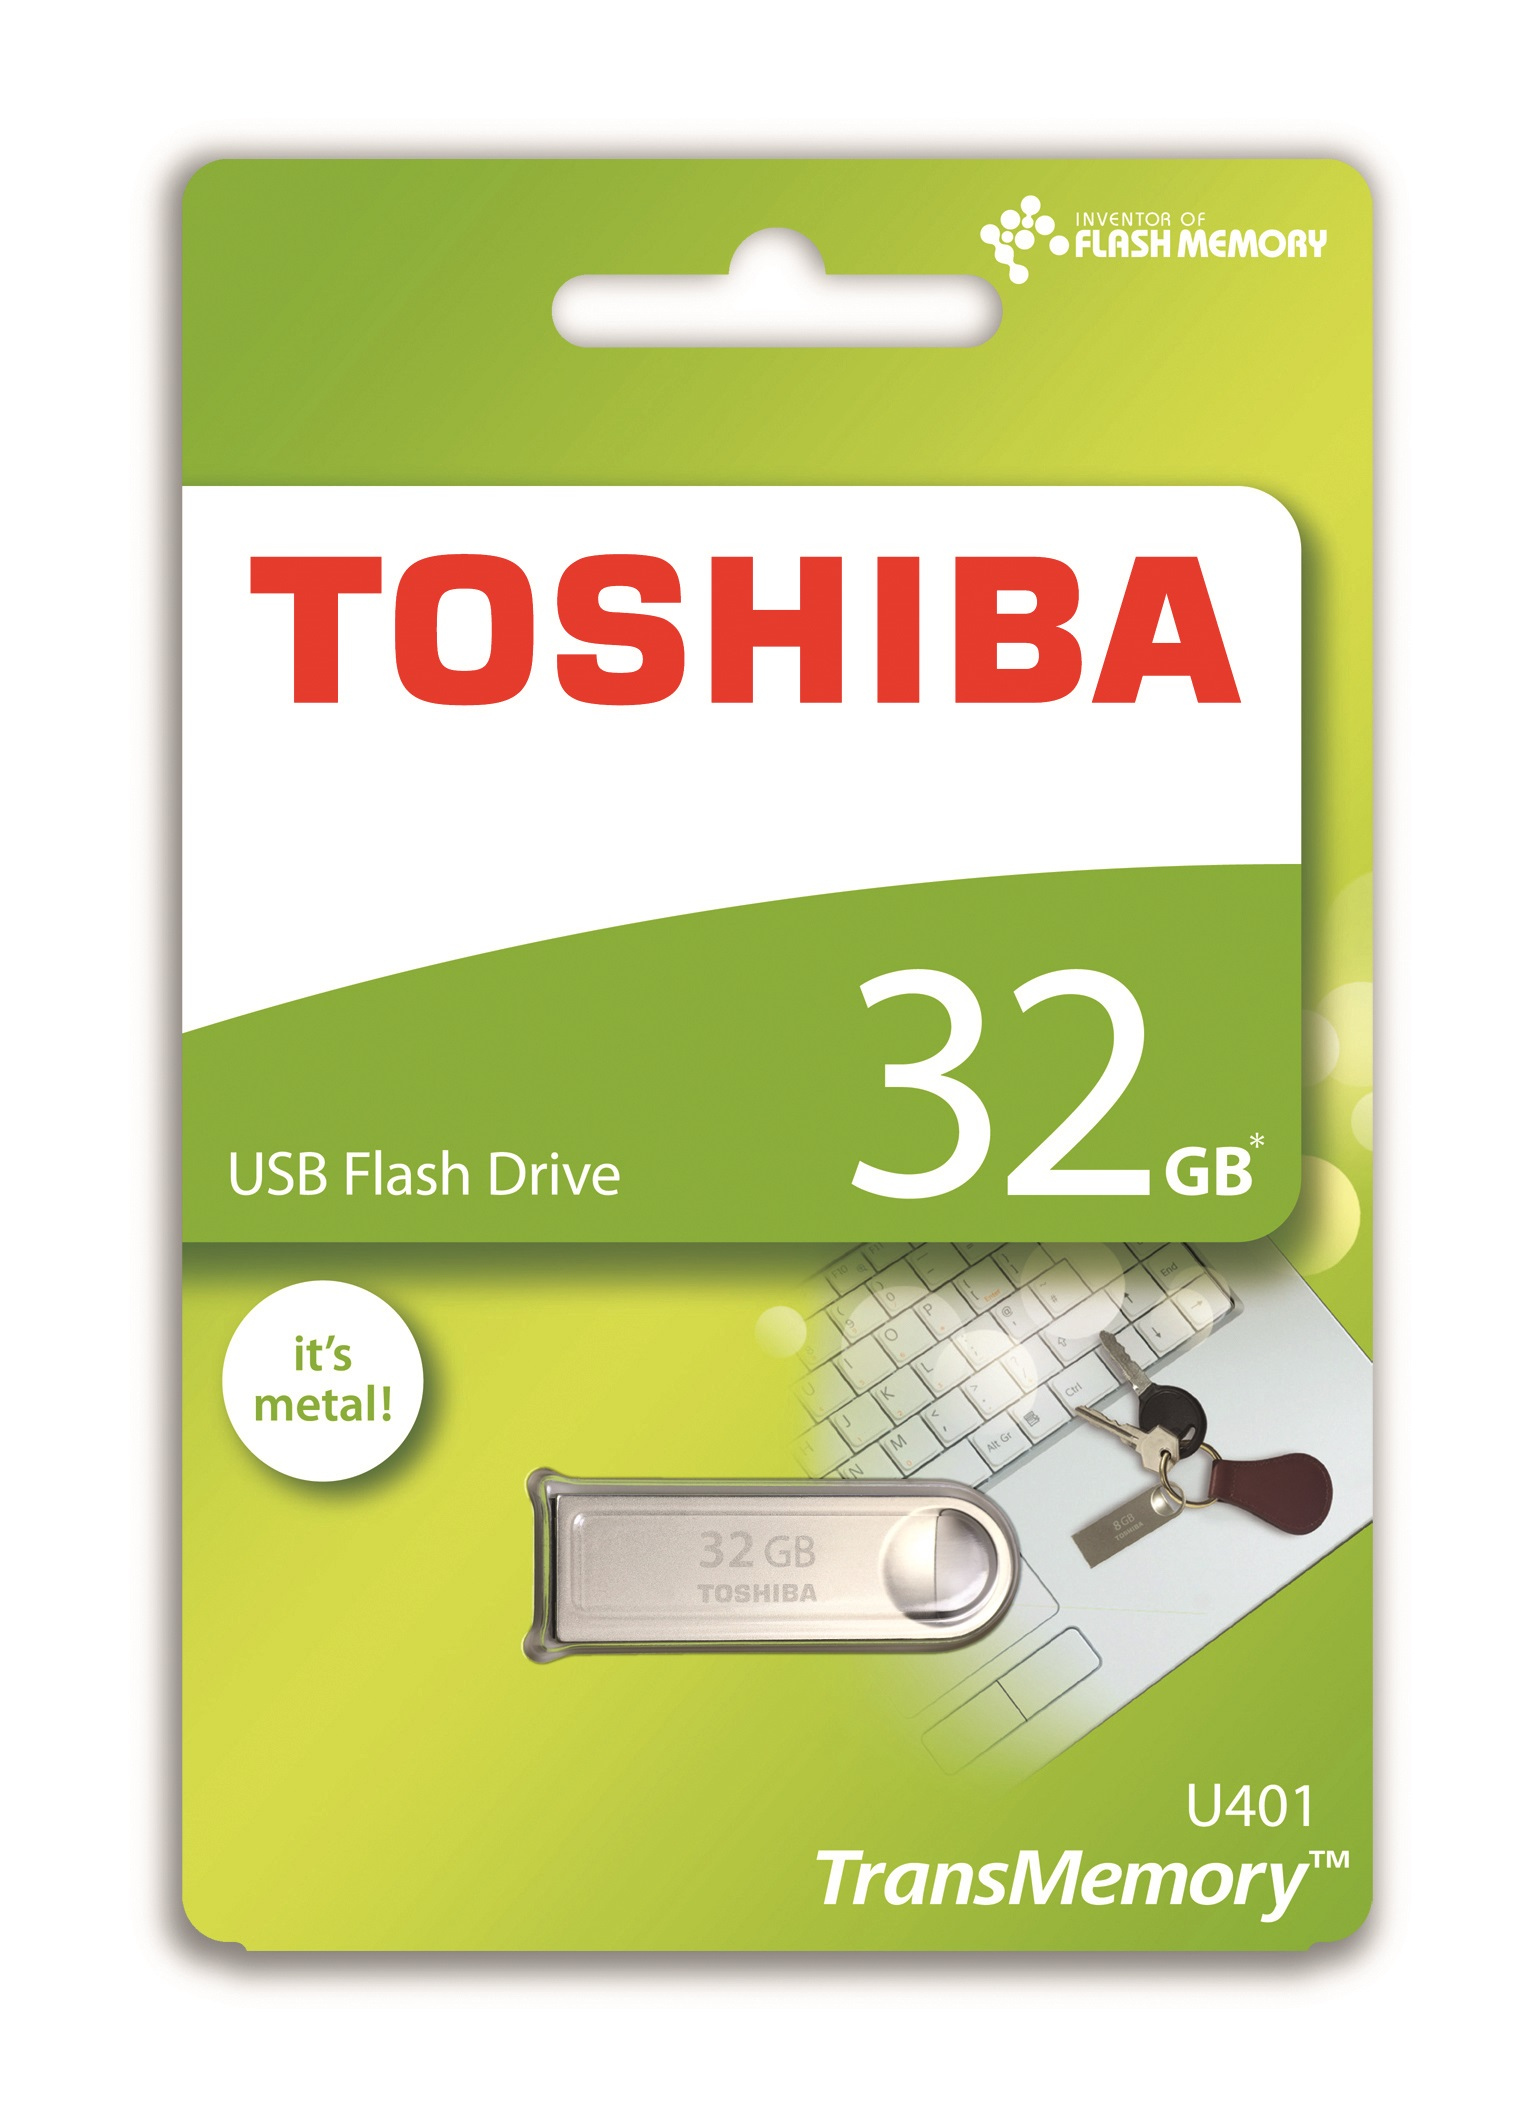 Toshiba TransMemory U401 32GB USB 2.0 Metal Flash Drive/Pen Drive | Shock & Dust Resistant Thumbnail 3